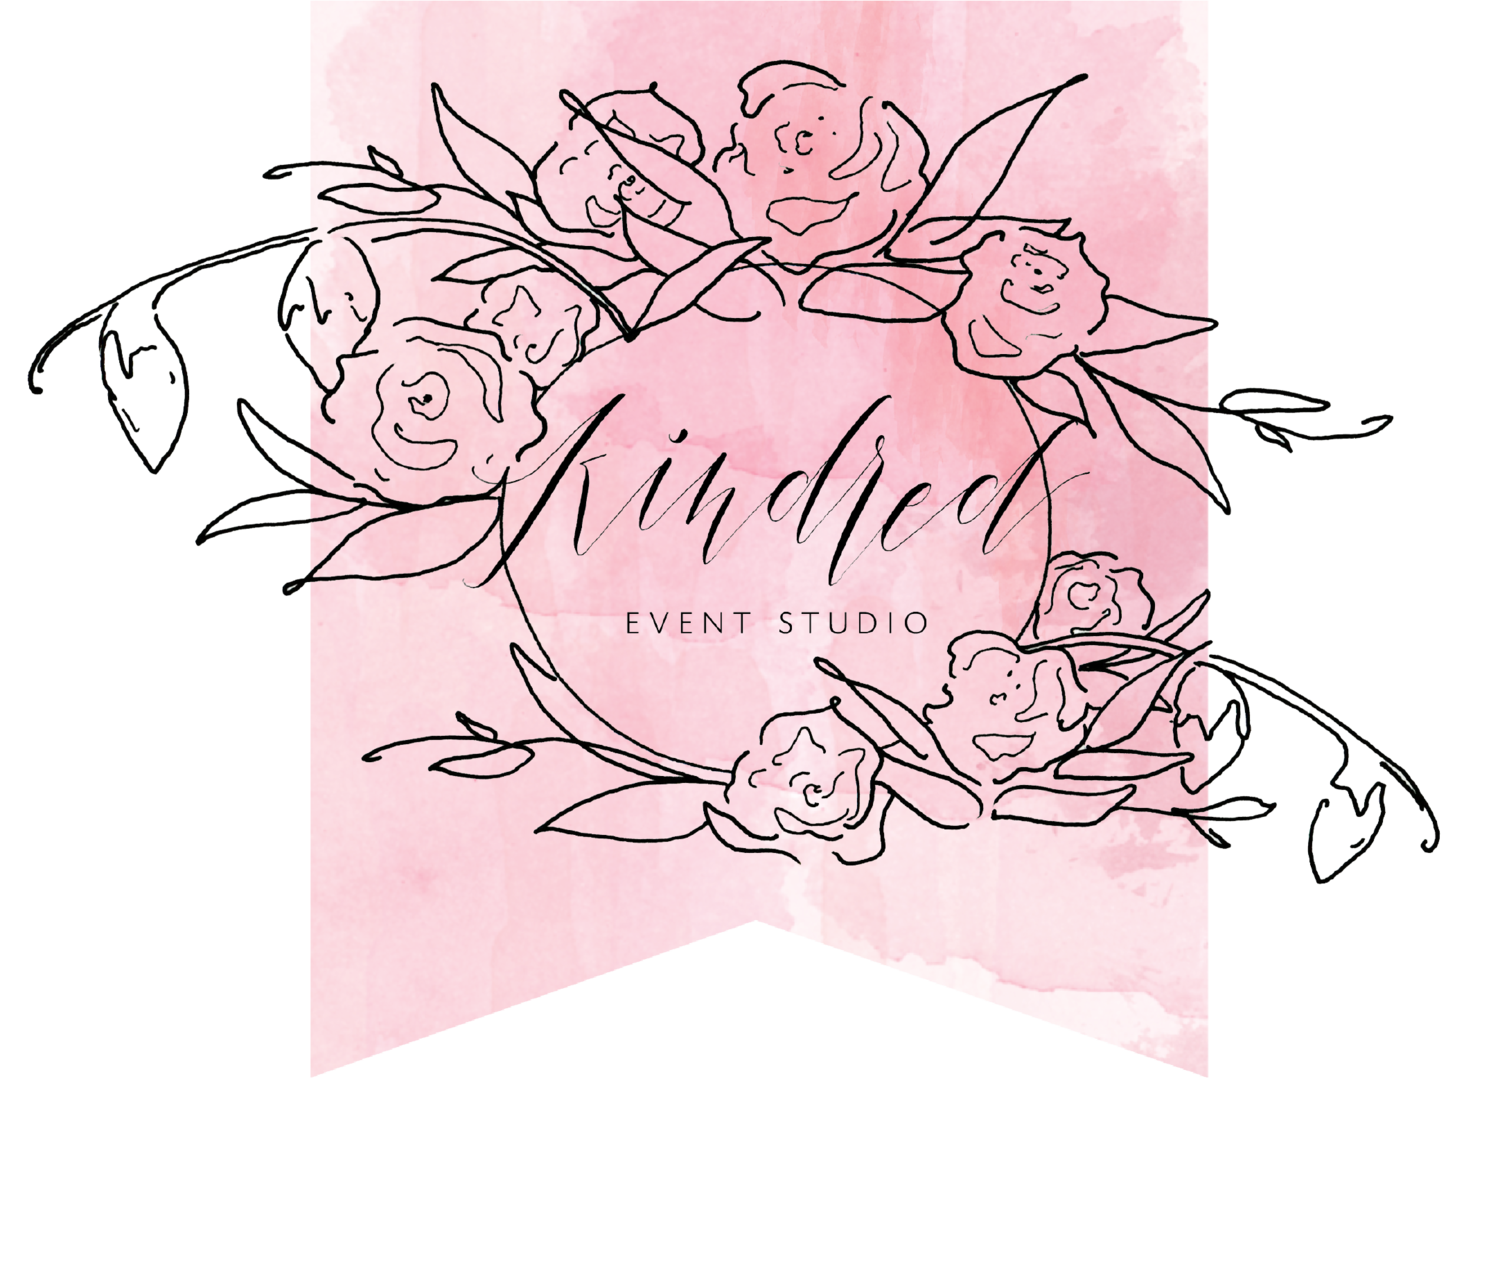 Kindred Event Studio: Event and Wedding Planners in Waco, Texas